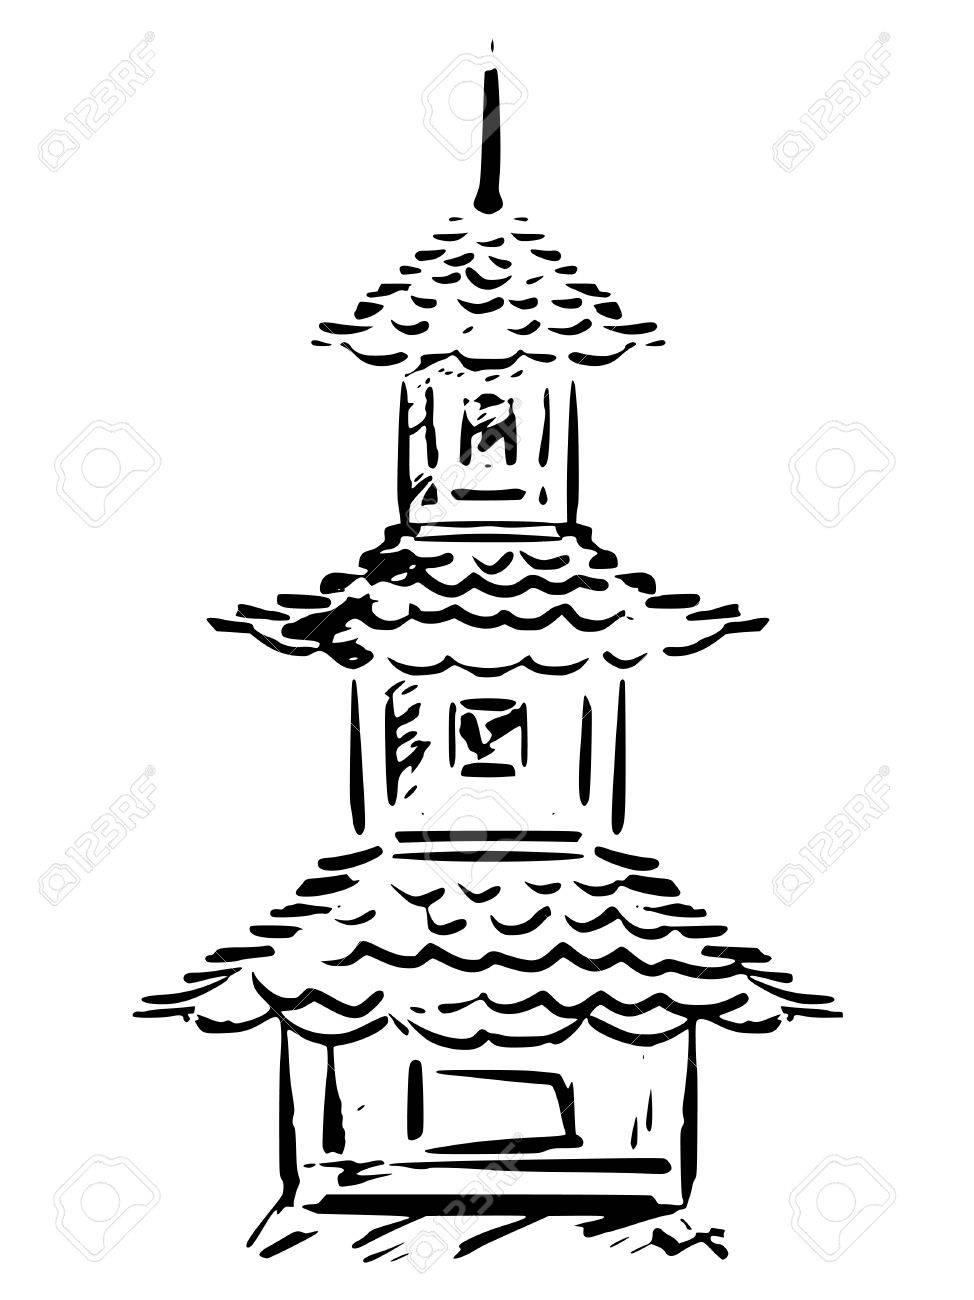 974x1300 Sketch, Hand Drawn Illustration Of Pagoda Royalty Free Cliparts